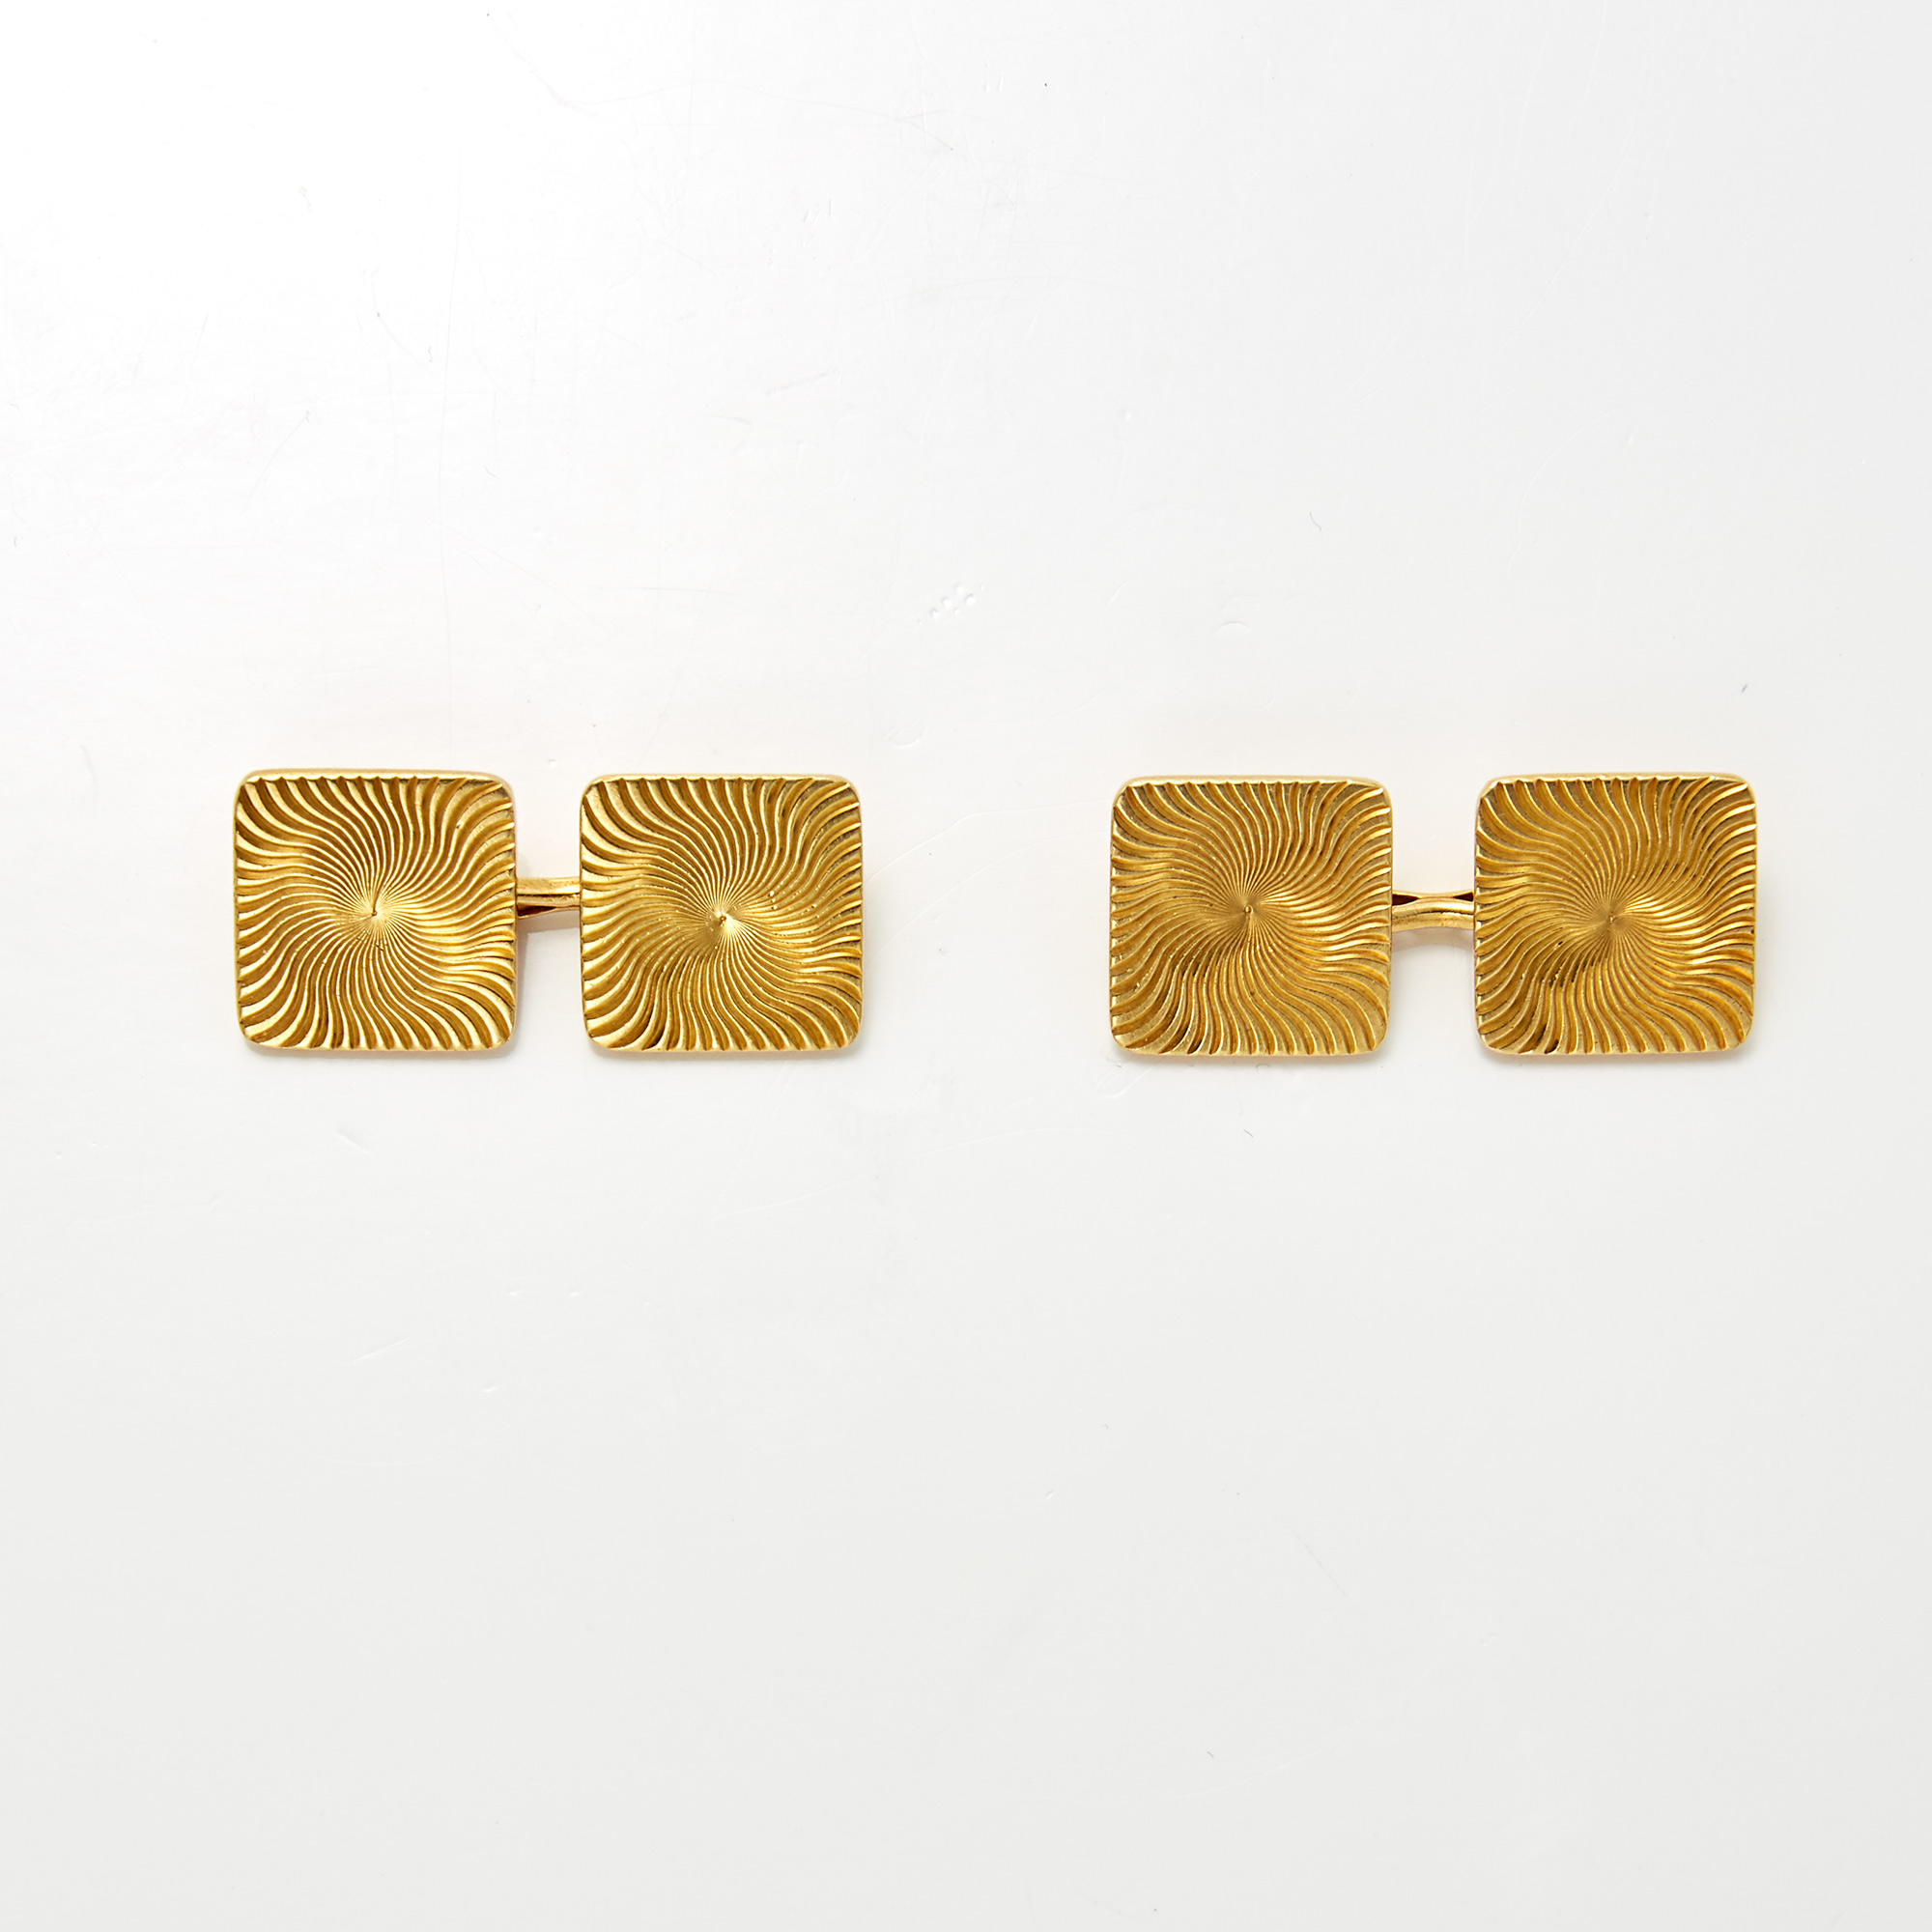 Lot image - Pair of Gold Cufflinks